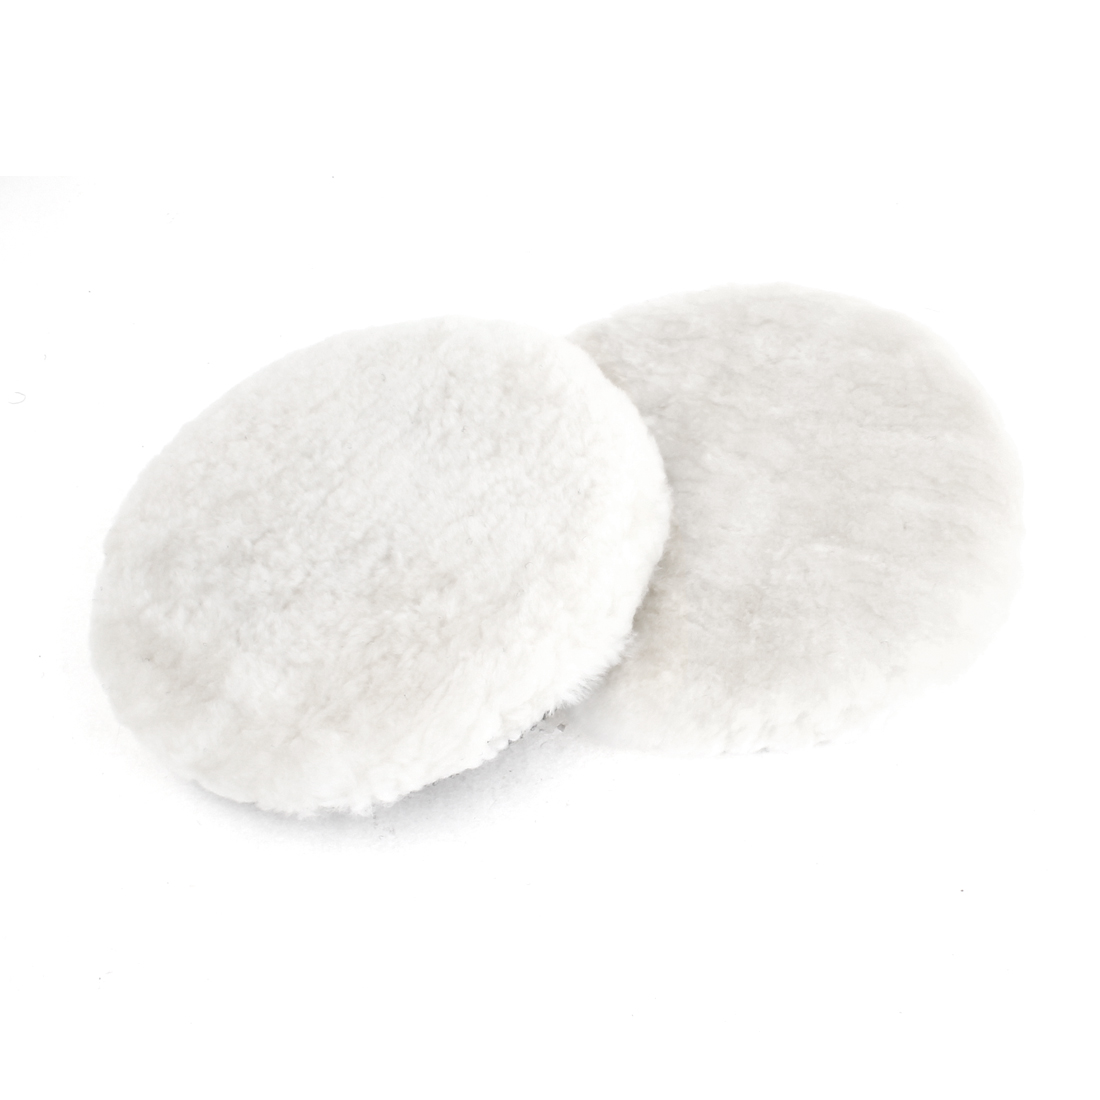 Unique Bargains 2x 16cm Dia White Rounded Faux Wool Buffing Polishing Wheel Pad for Car by Unique Bargains